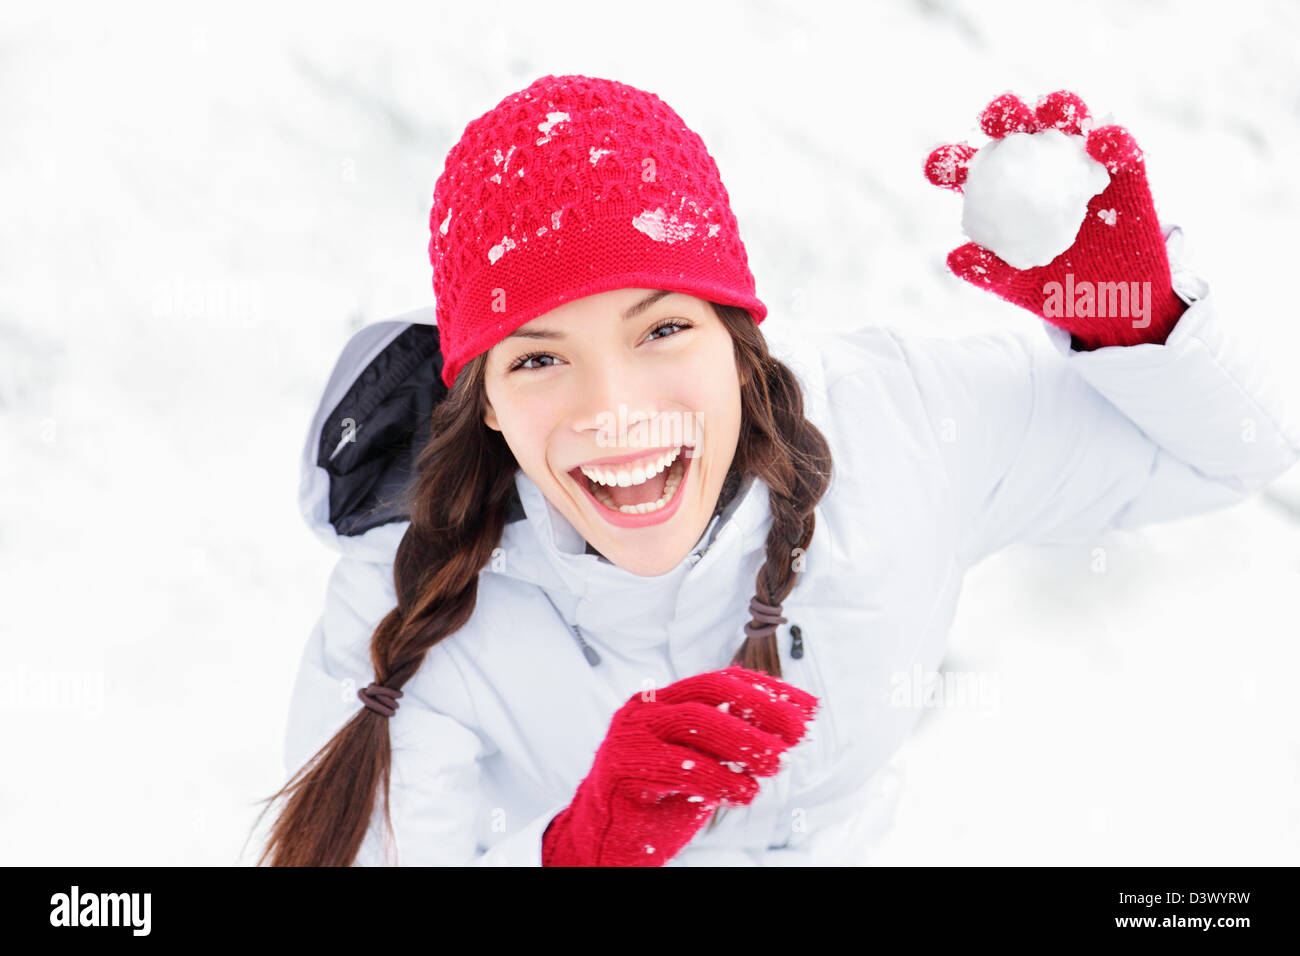 Cute playful multicultural Asian Caucasian young woman throwing snowball at camera having fun outdoors on snowing - Stock Image